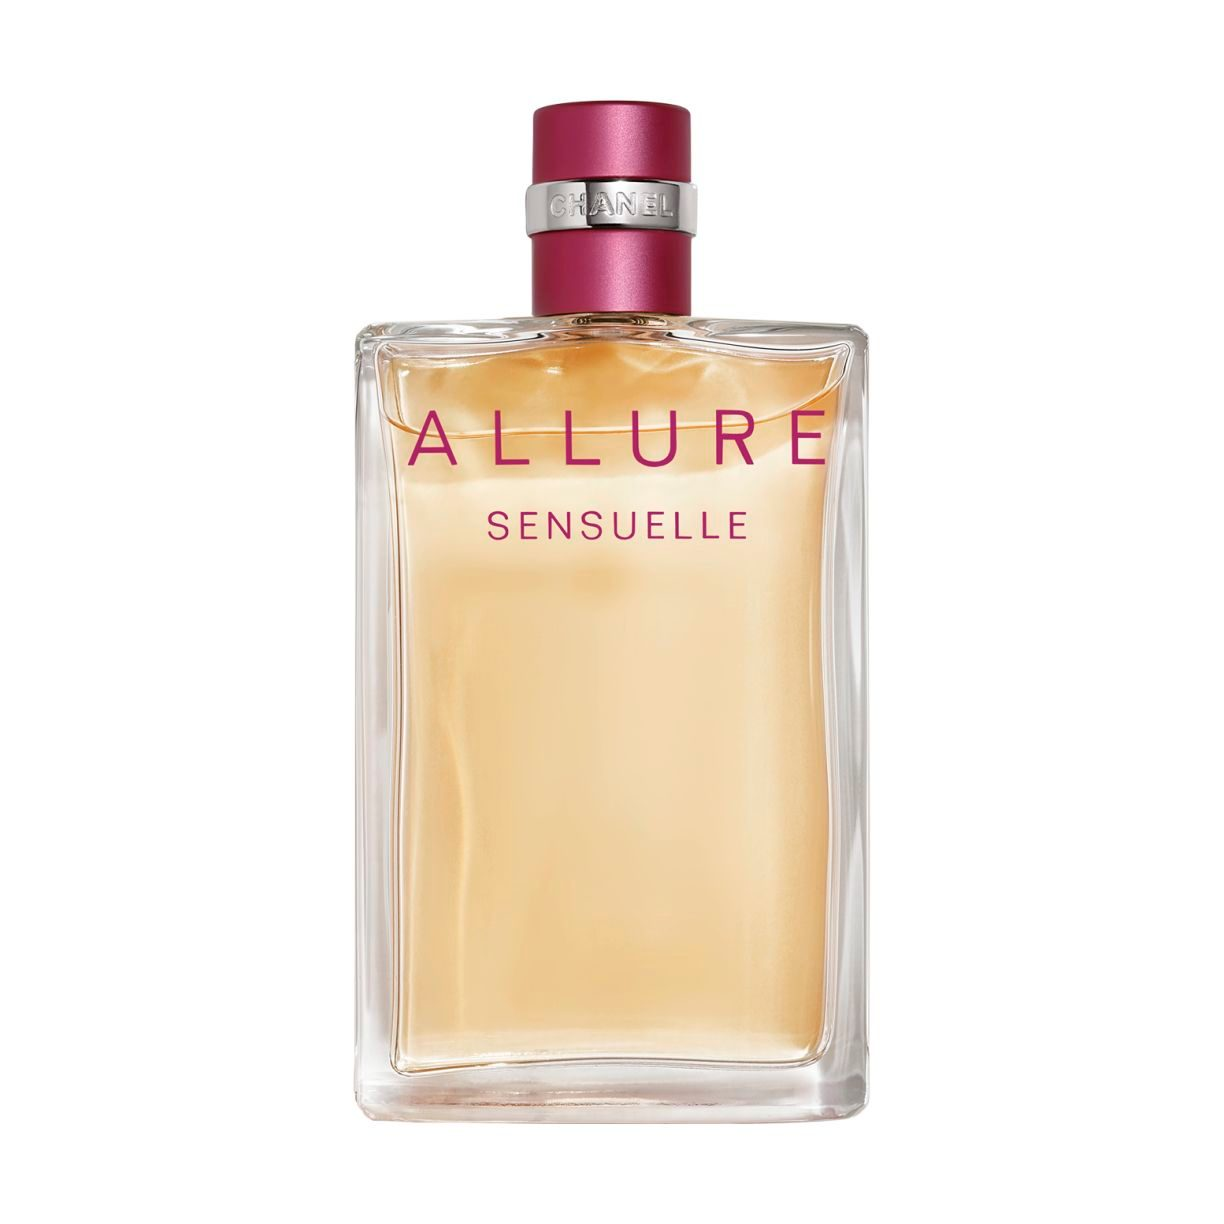 ALLURE SENSUELLE WODA TOALETOWA W SPRAYU 50ml